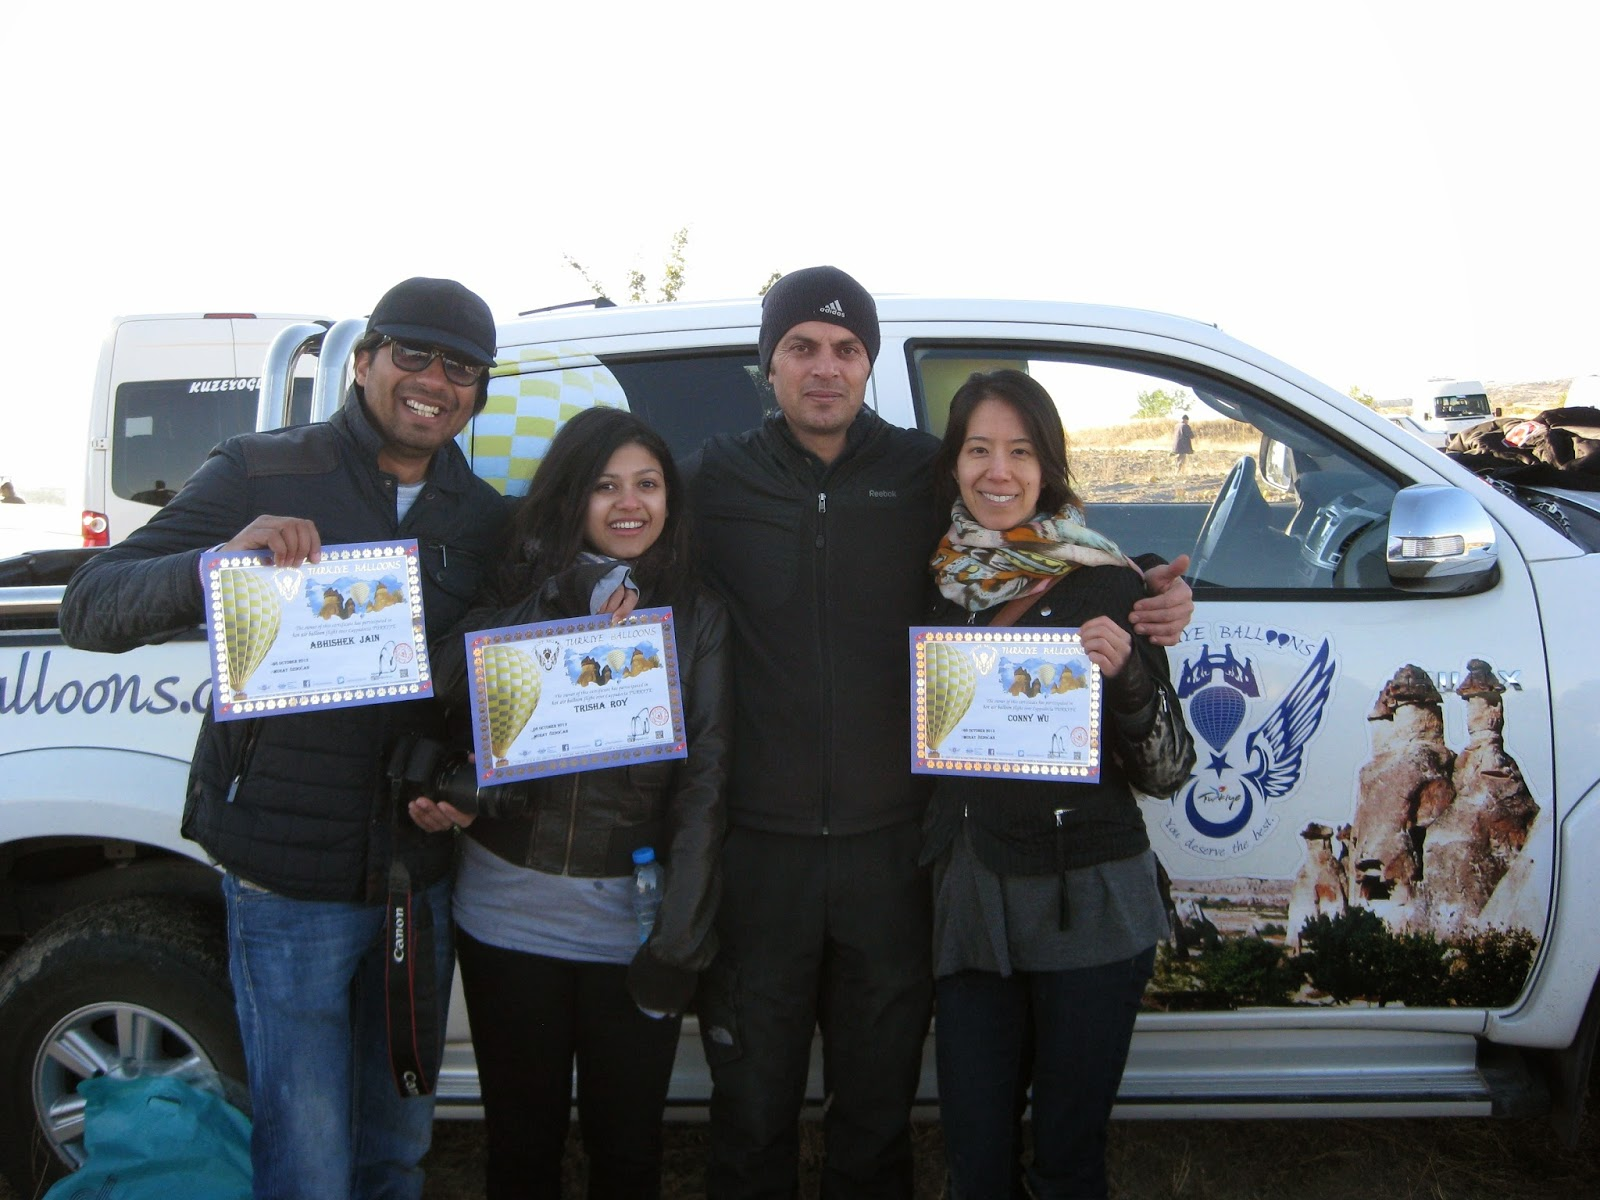 Cappadocia - We proudly show off our certificates